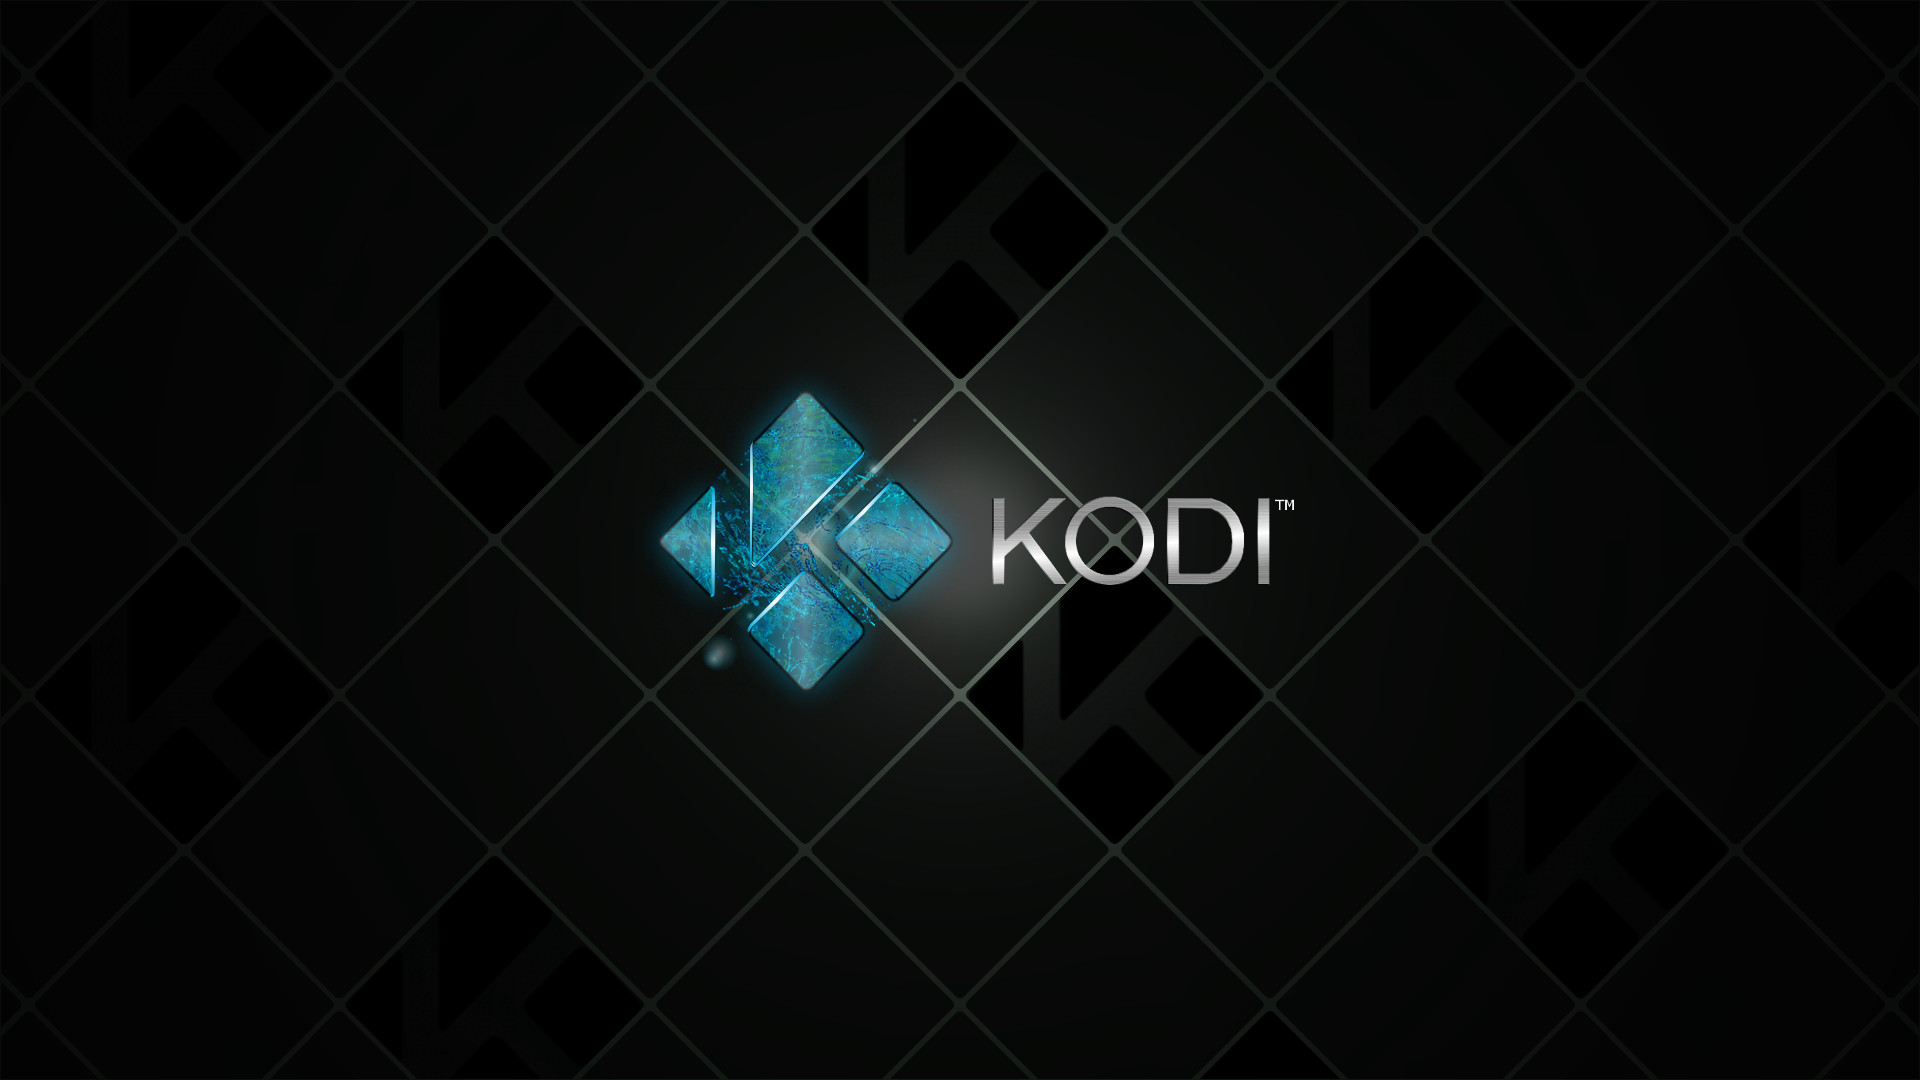 1920x1080 RE Kodi fanart and wallpaper Tinwarble 2015 04 03 0149